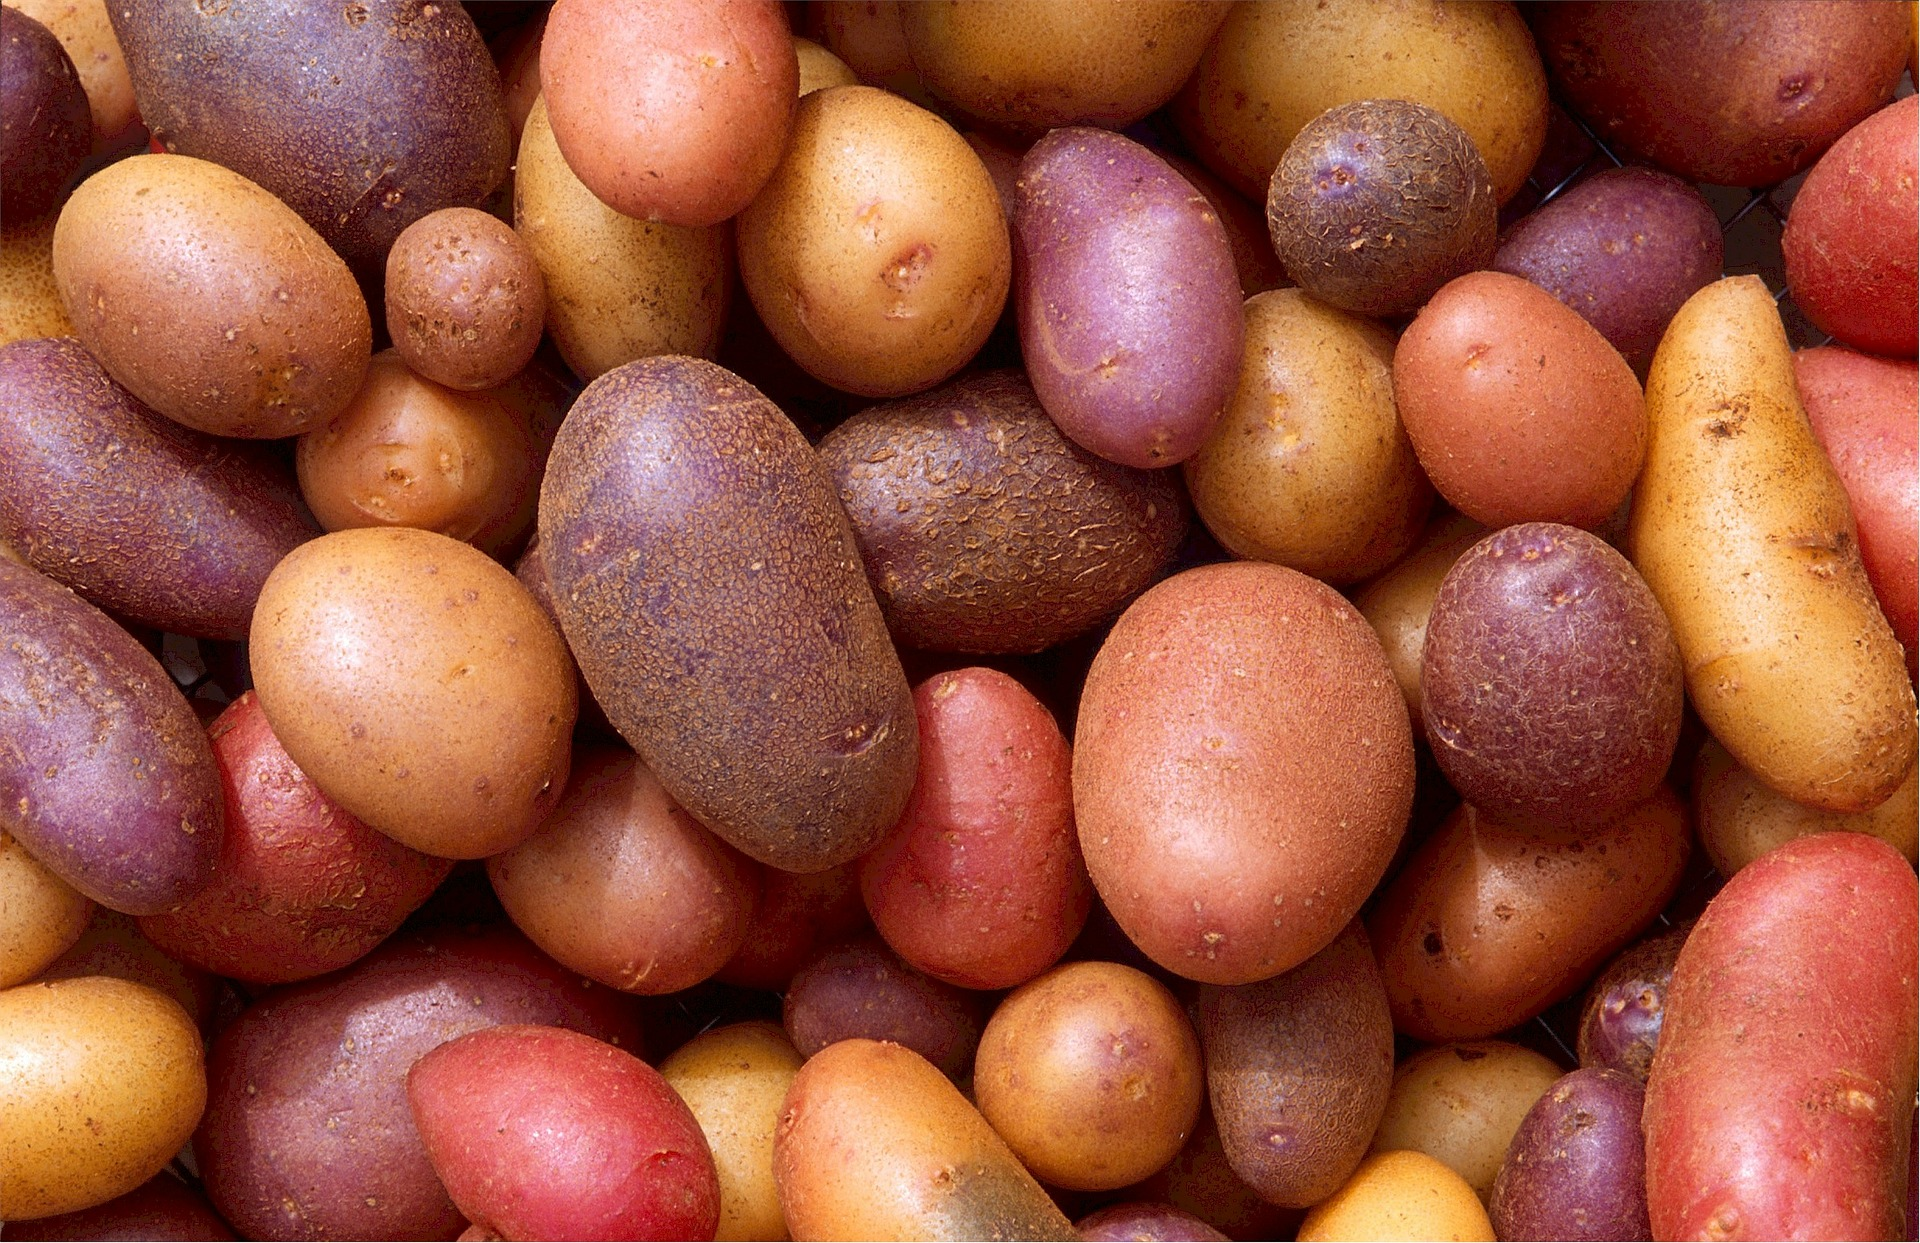 There are thousands of varieties of potatoes in all shapes and colors